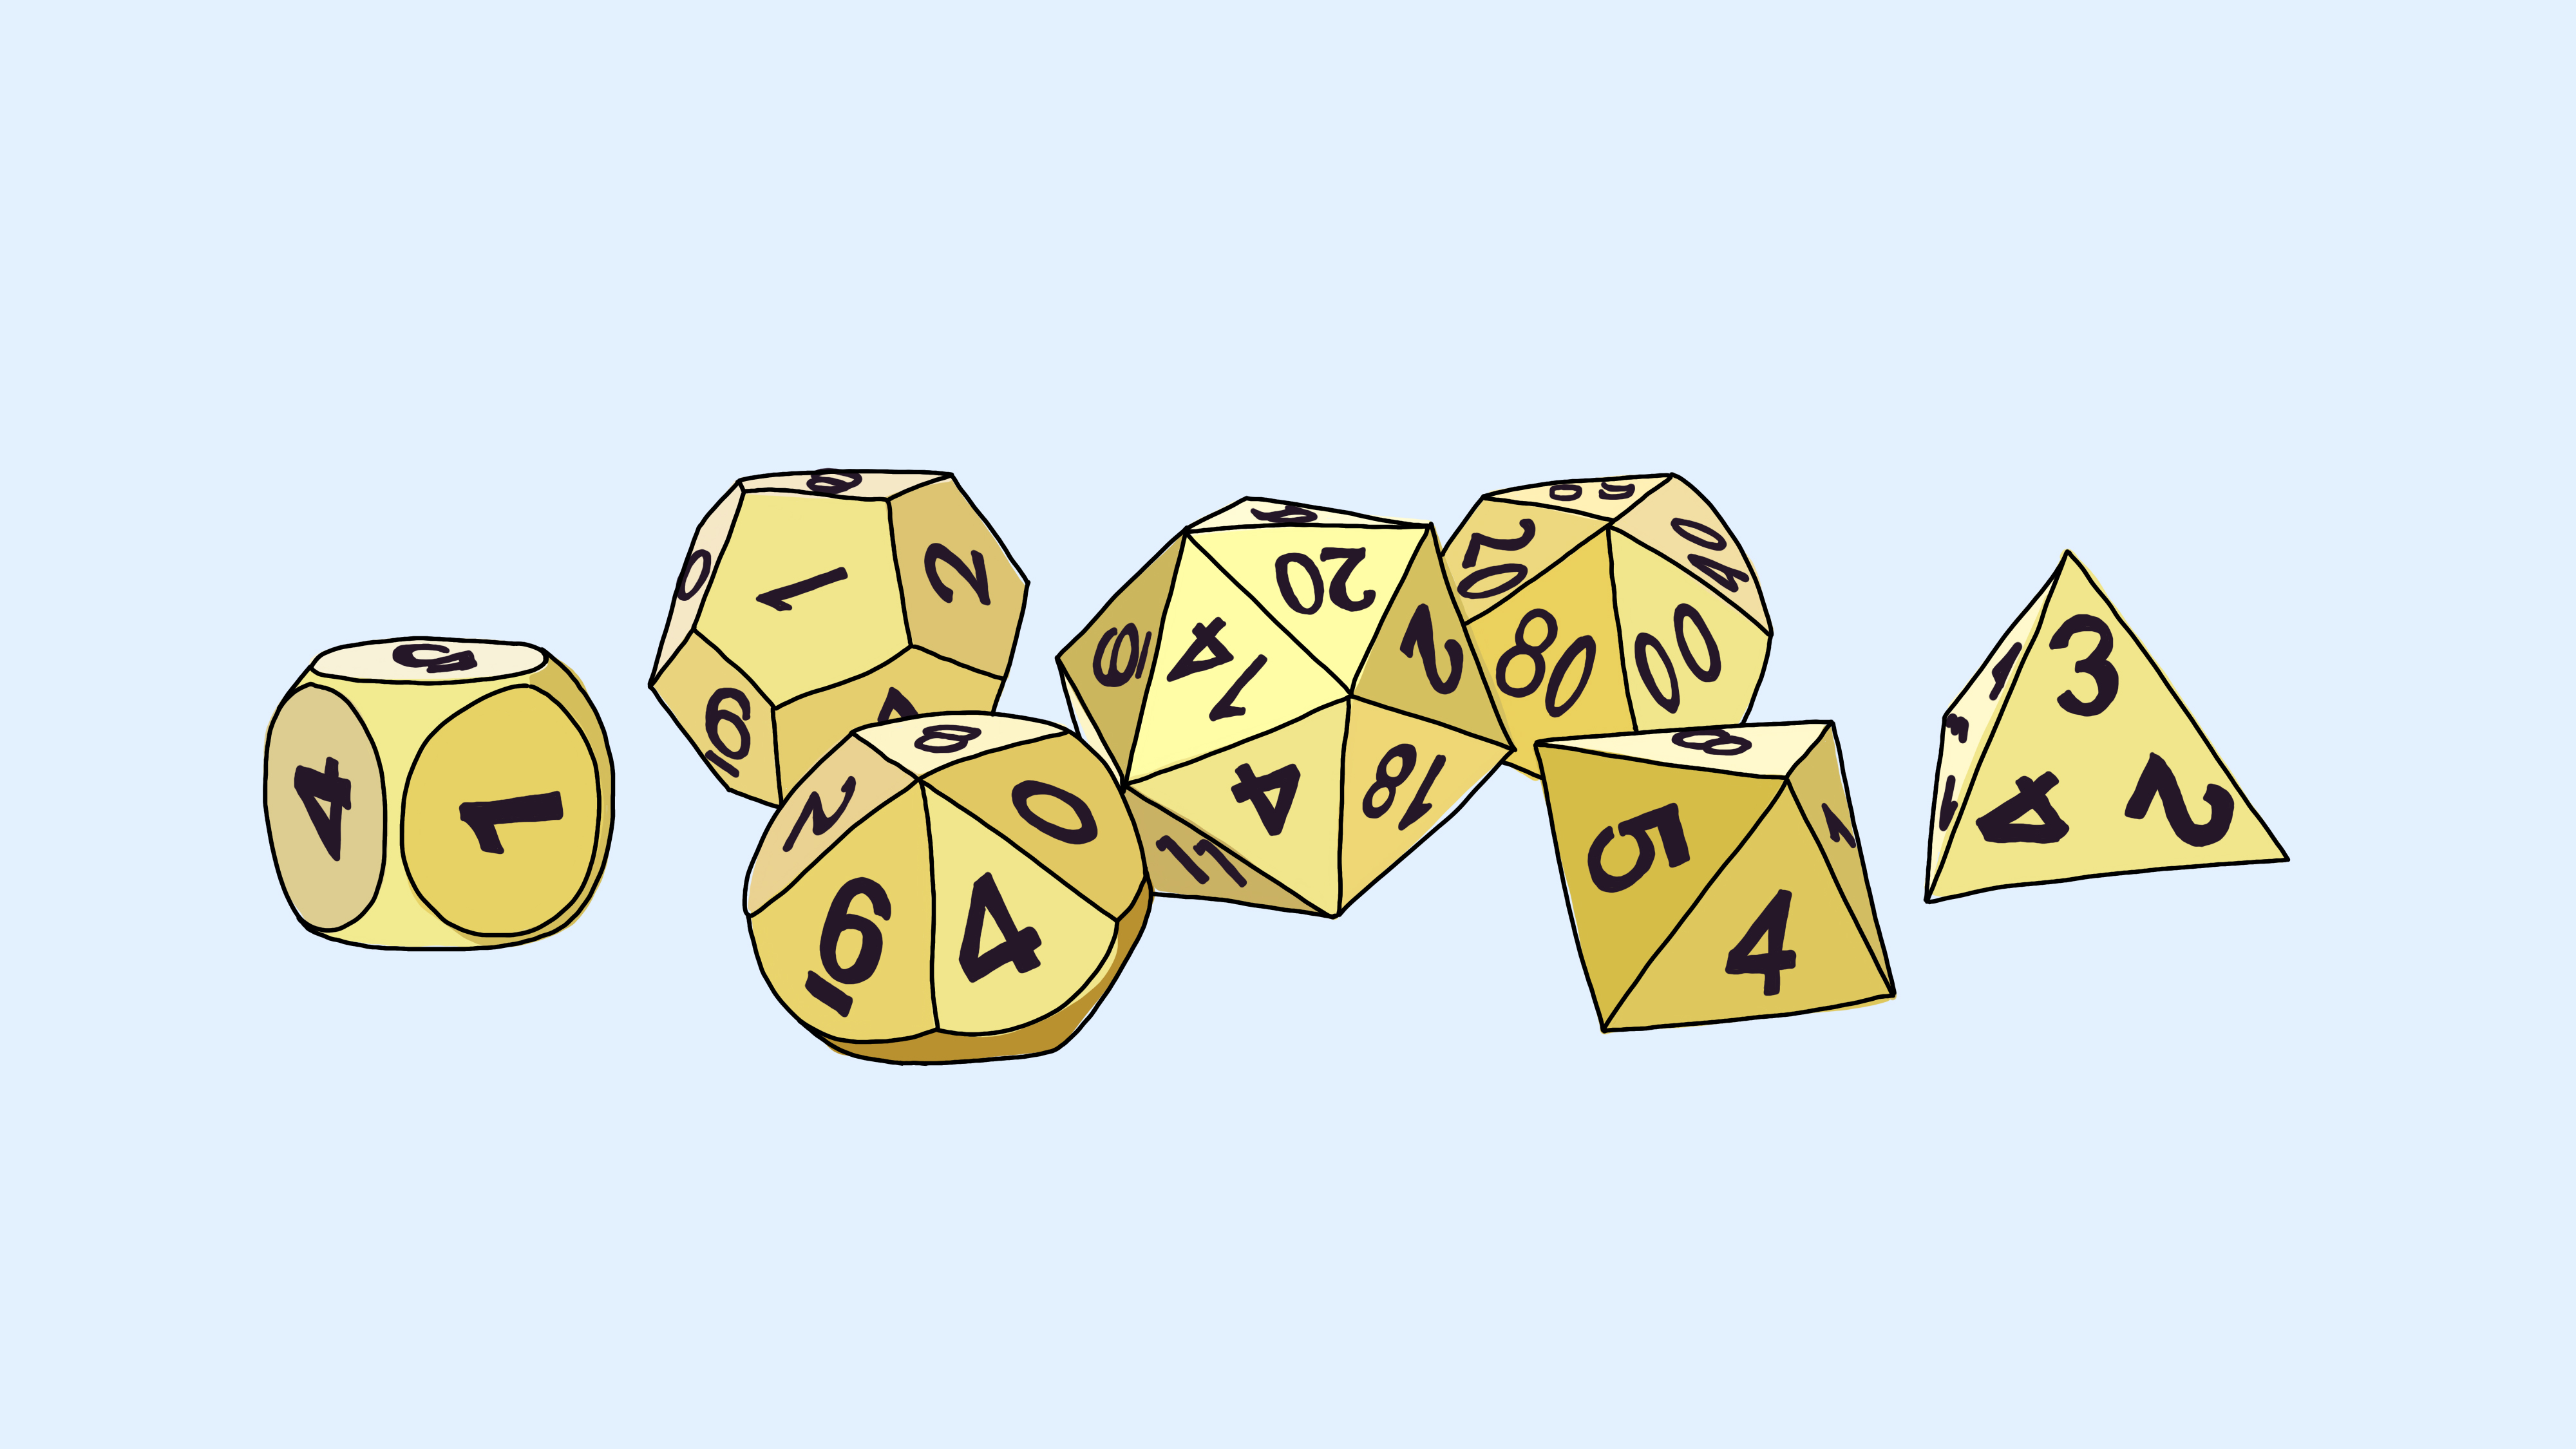 The best $1.16 I ever spent: a set of loaded Dungeons & Dragons dice